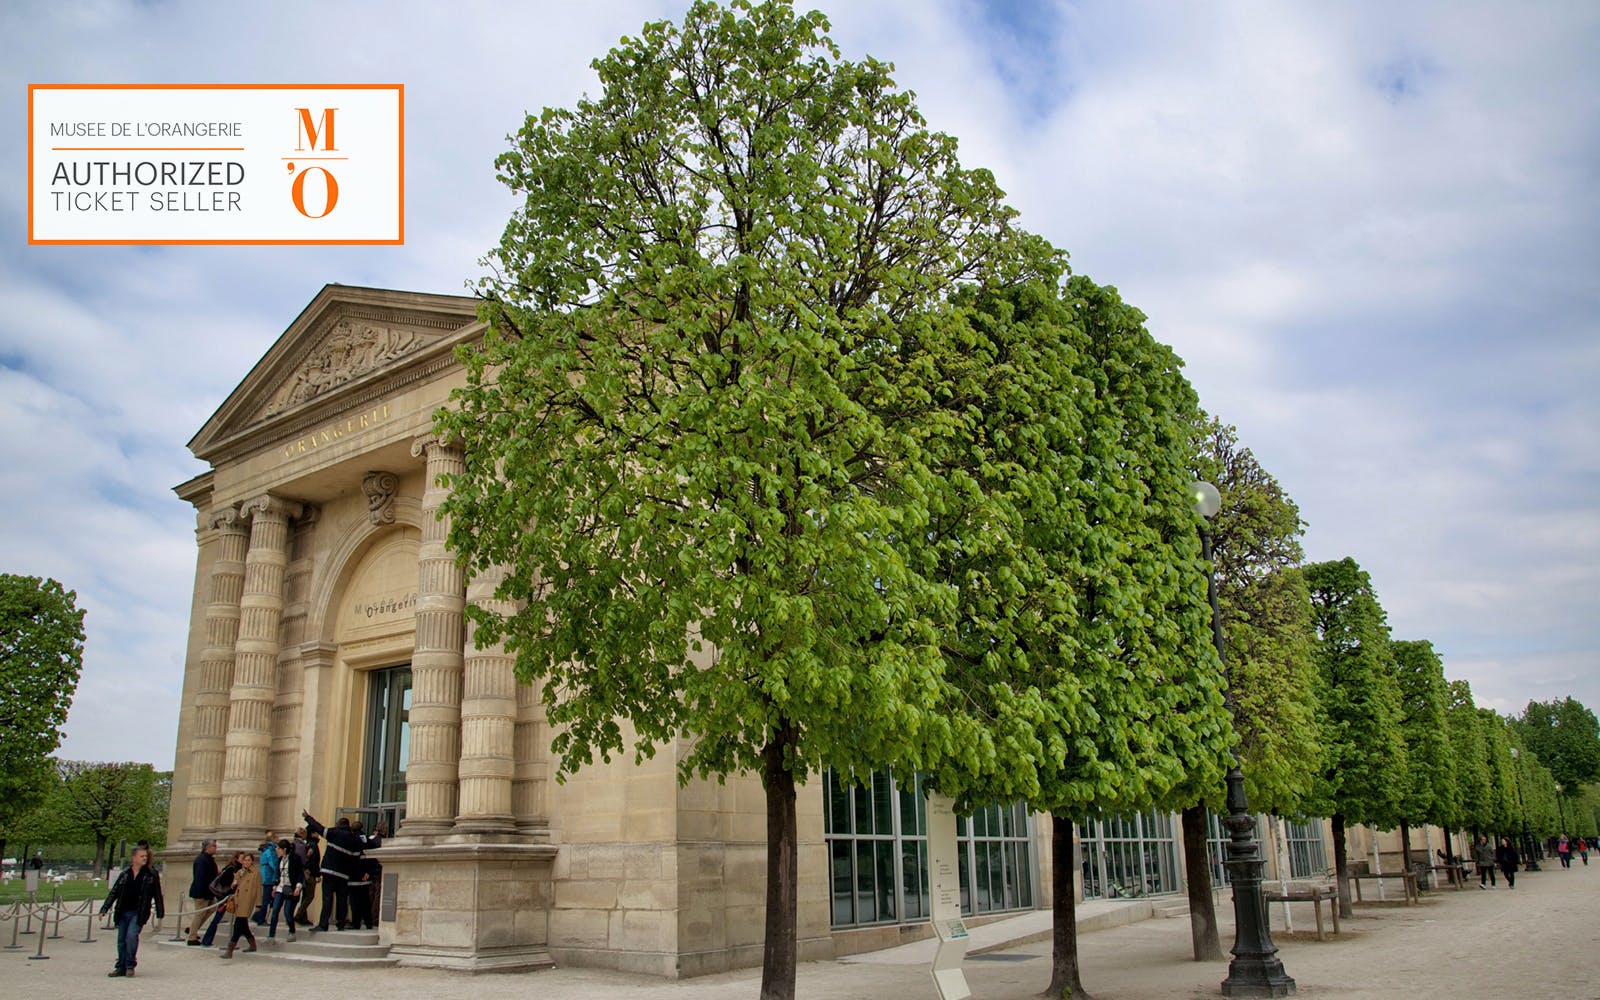 Priority Access to Musee de L'Orangerie